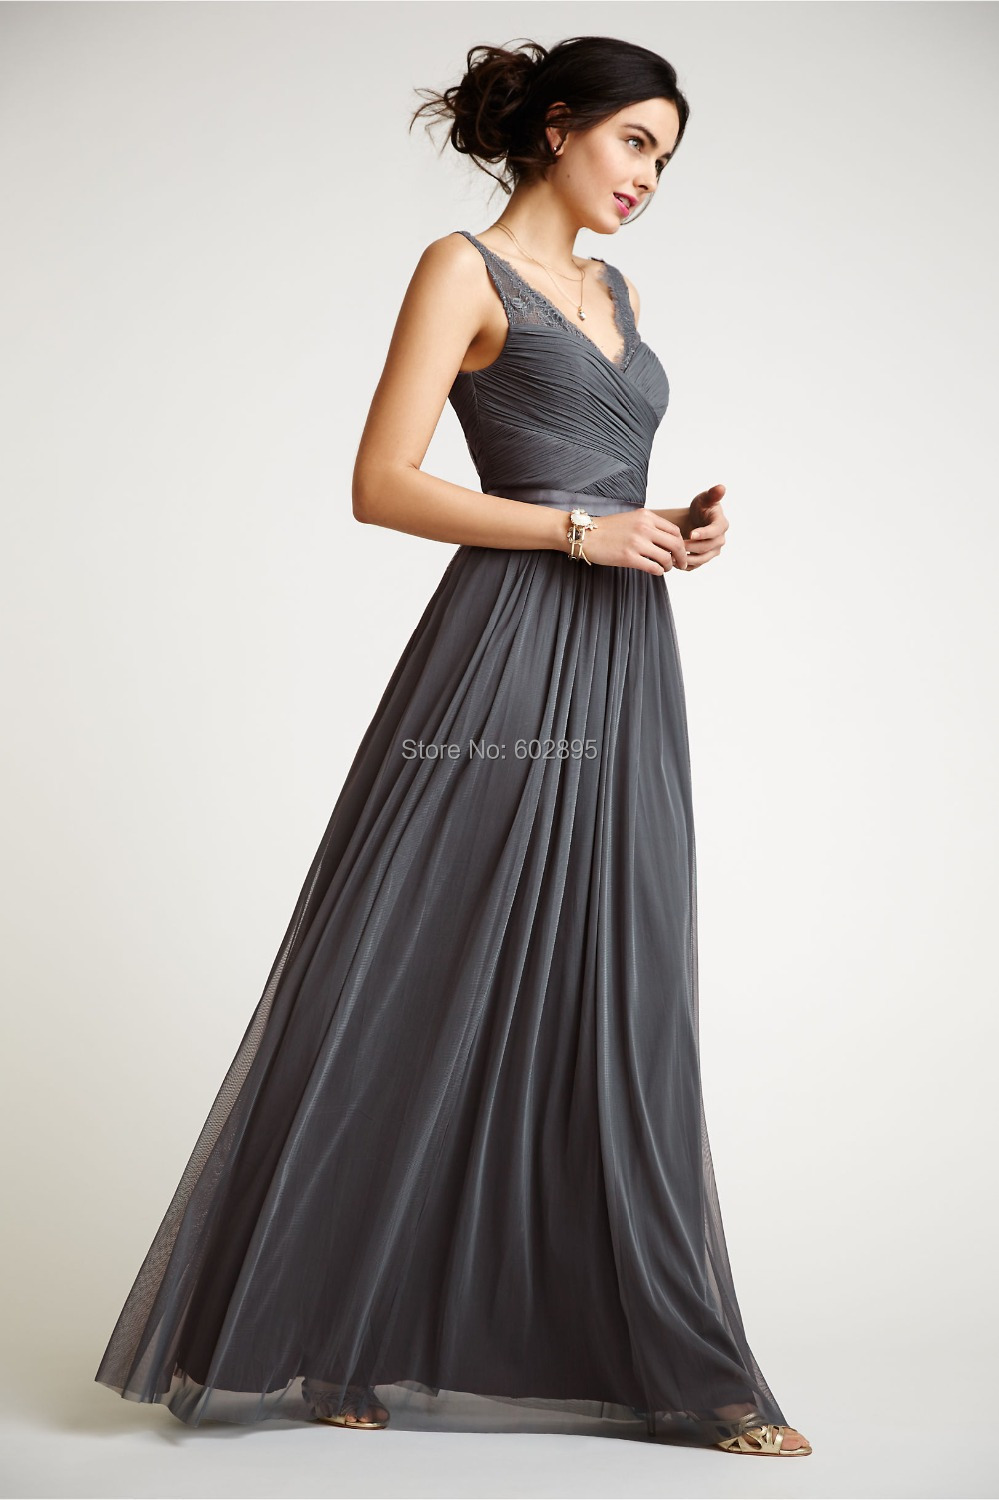 Elegant pleated chiffon lace v neck dark grey bridesmaid for Gray dresses for a wedding